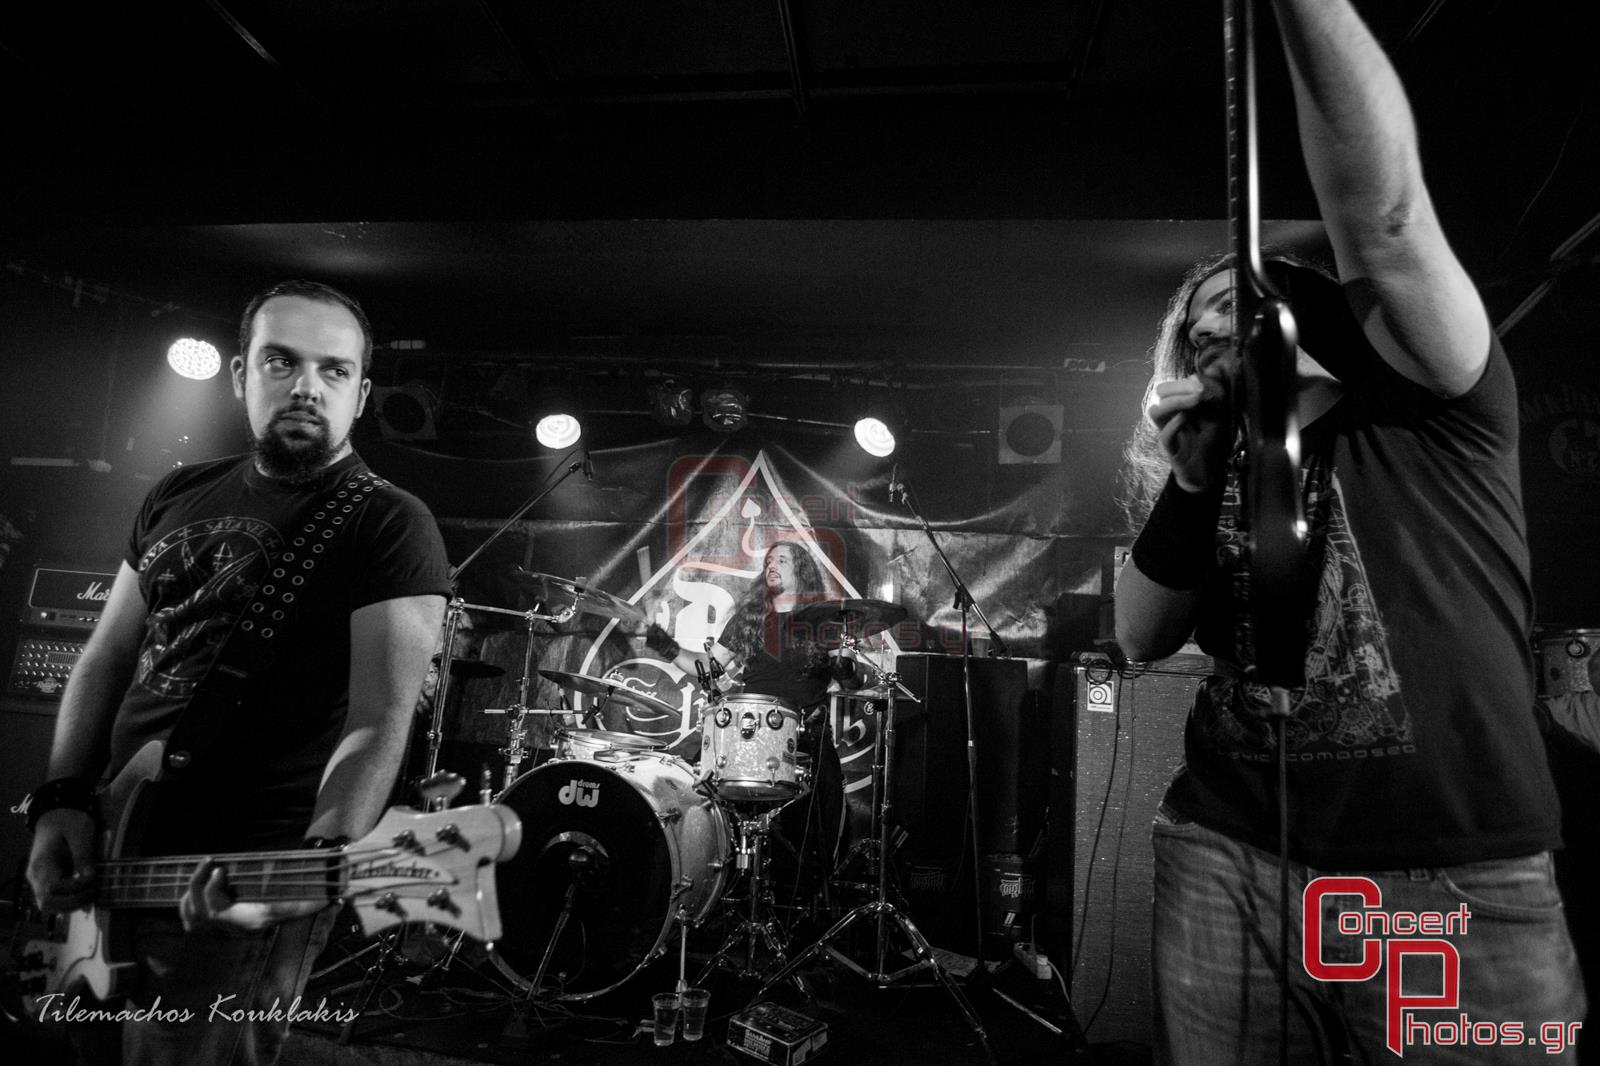 Nightstalker-Nightstalker AN Club photographer:  - concertphotos_-16